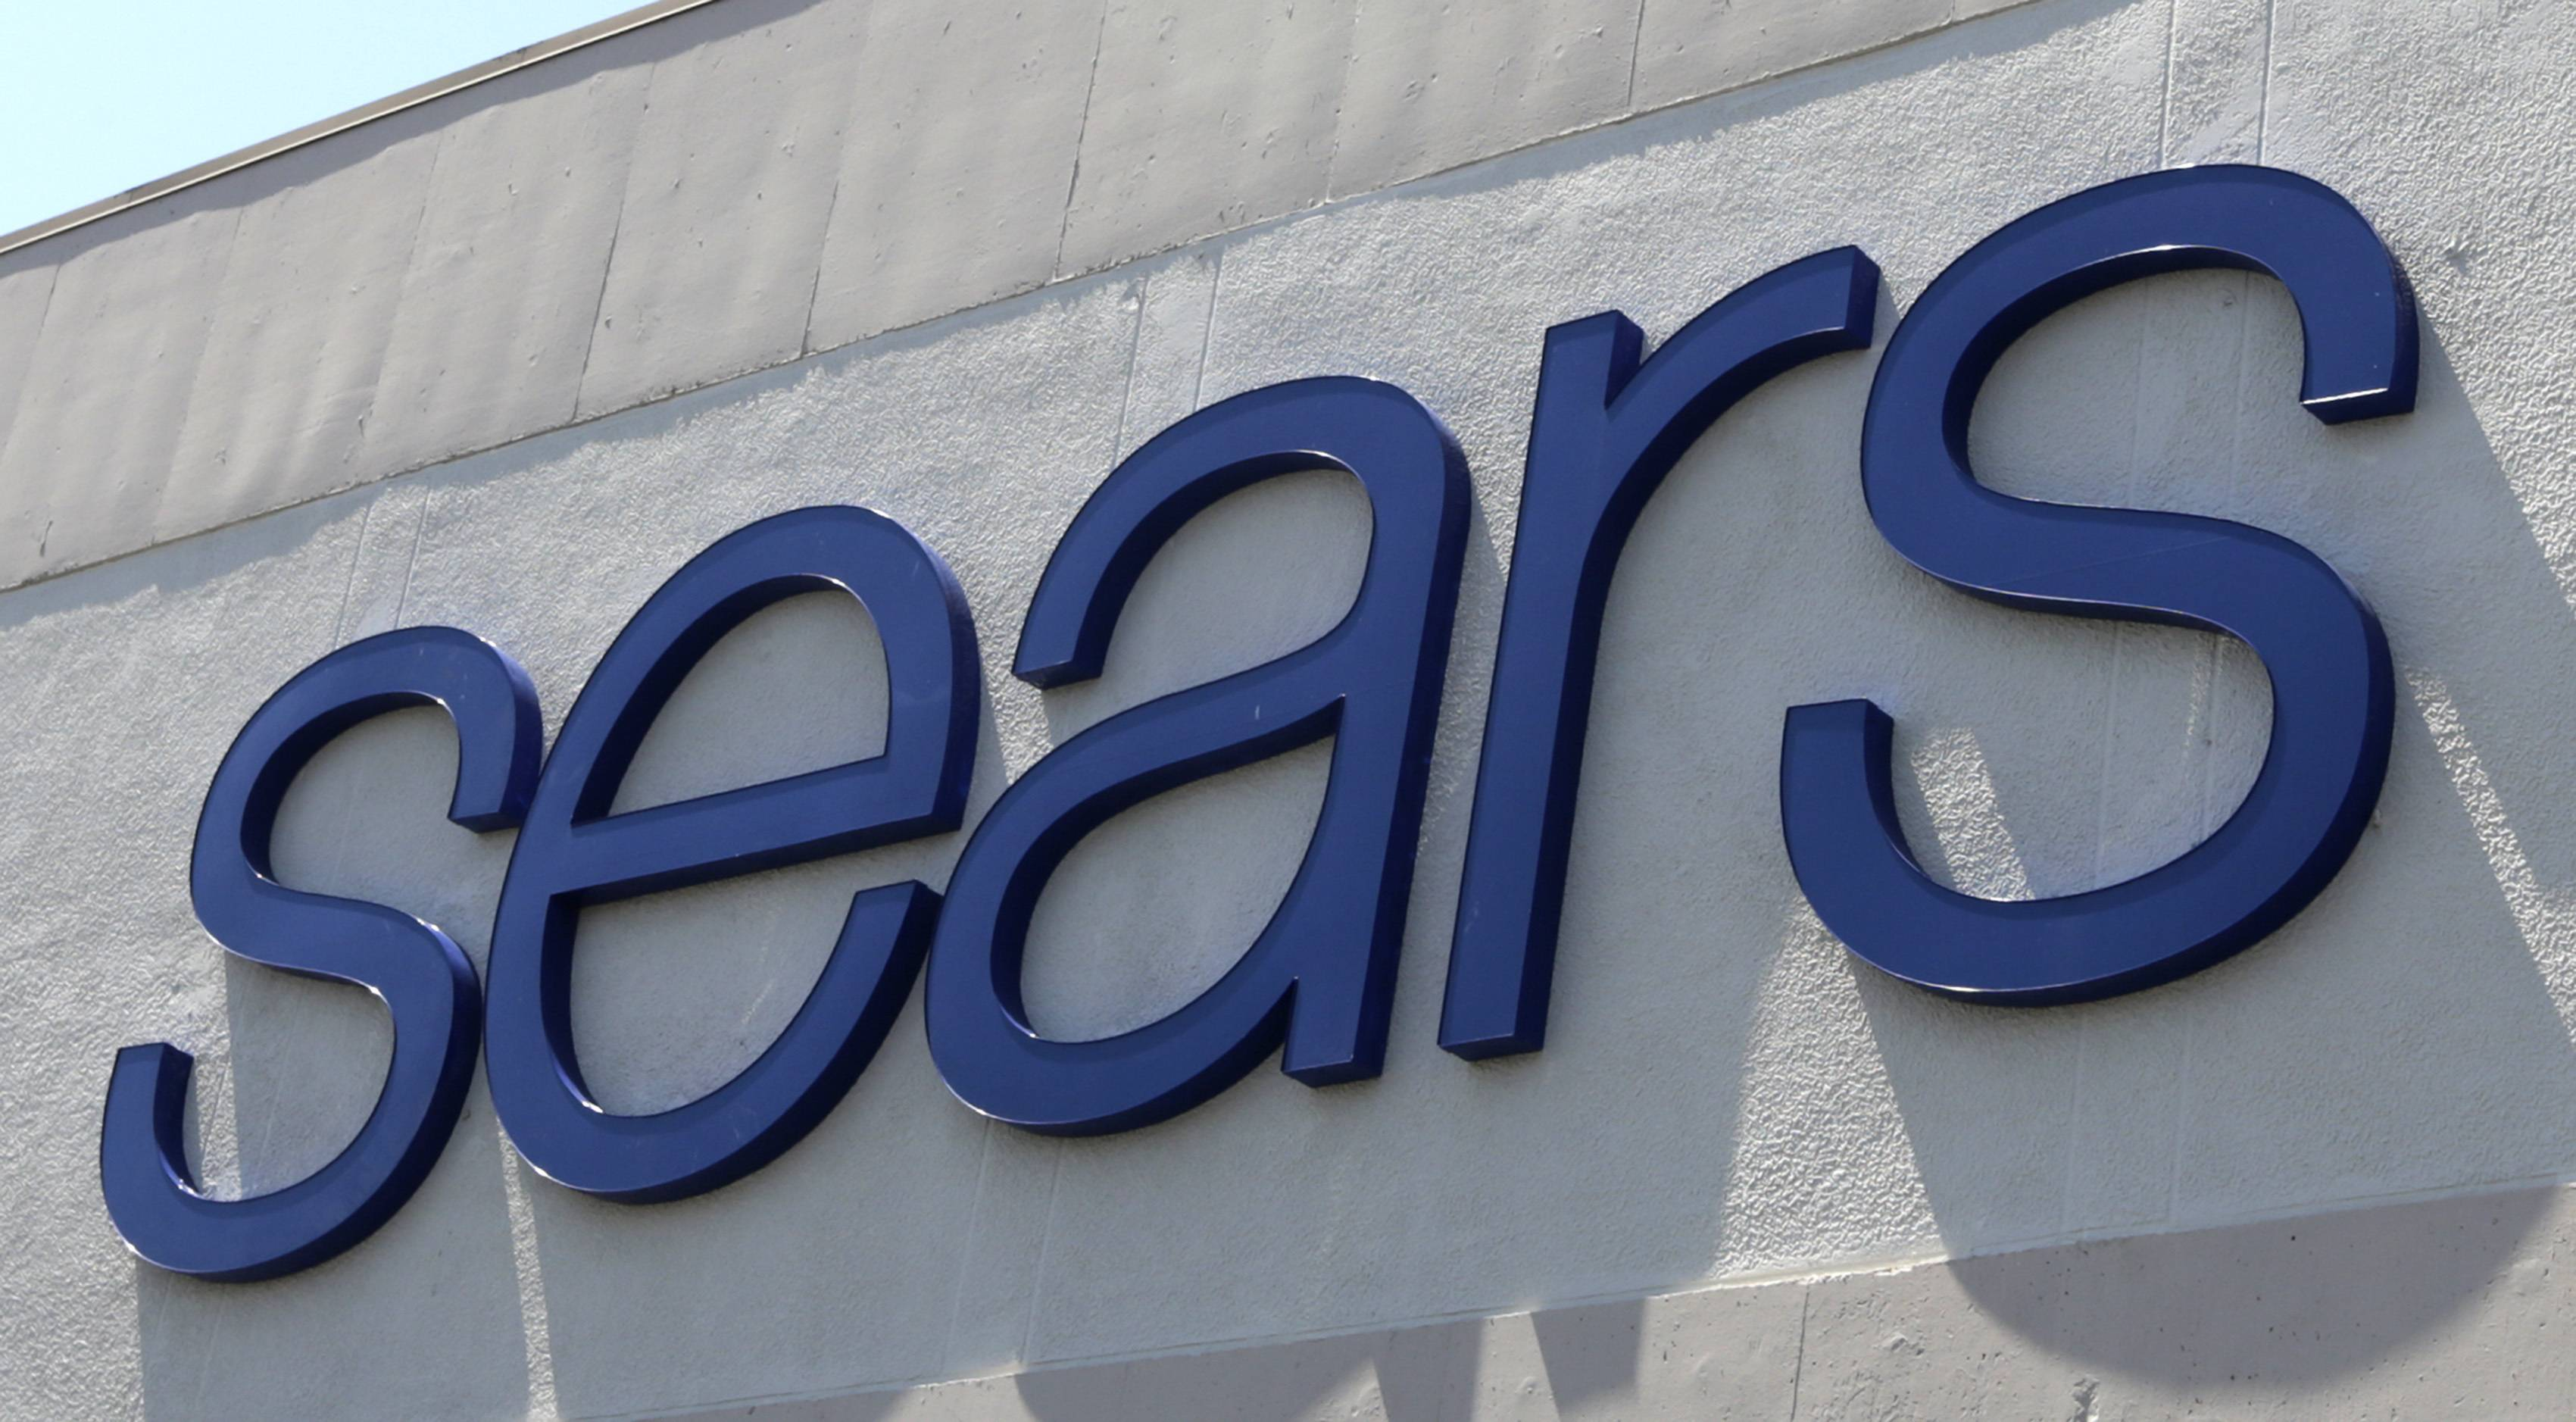 Three suburban Sears stores on the list of 72 more set to close